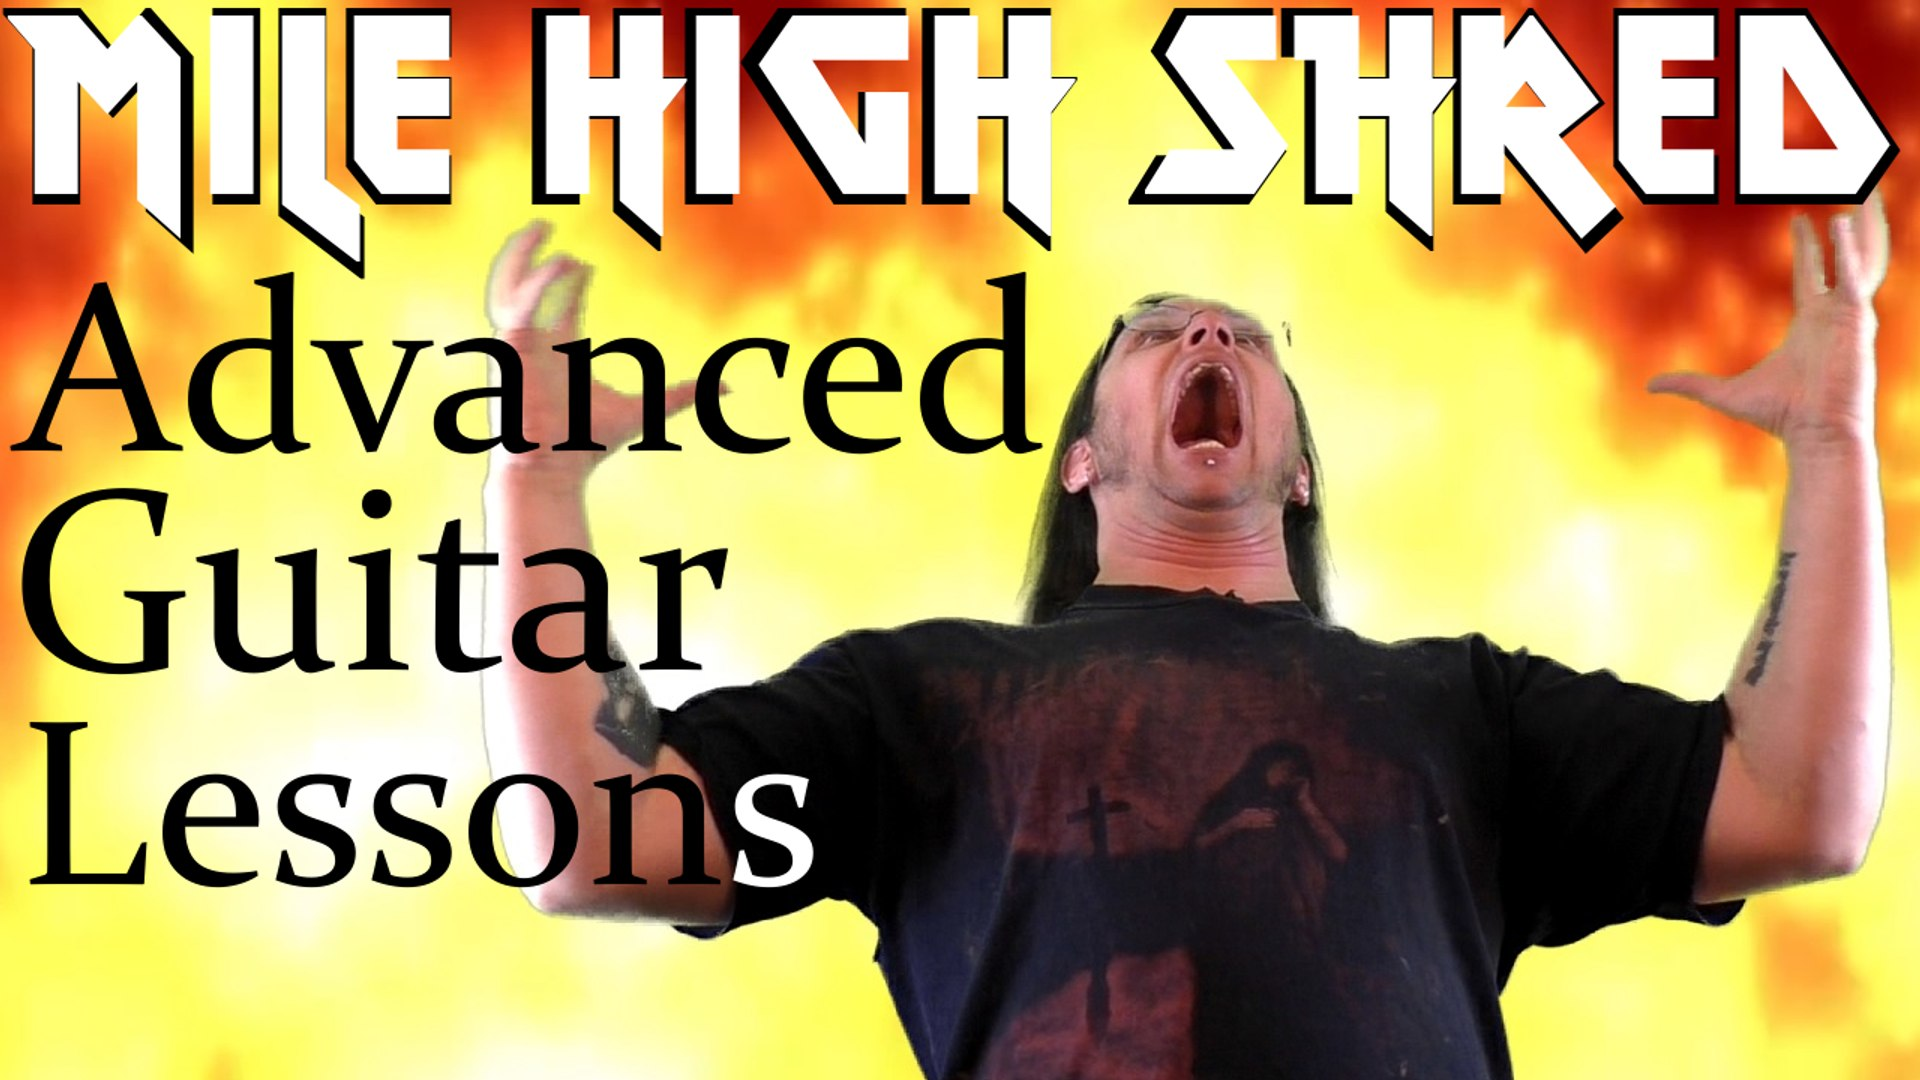 Advanced Guitar Lessons • Helping Musicians Grow